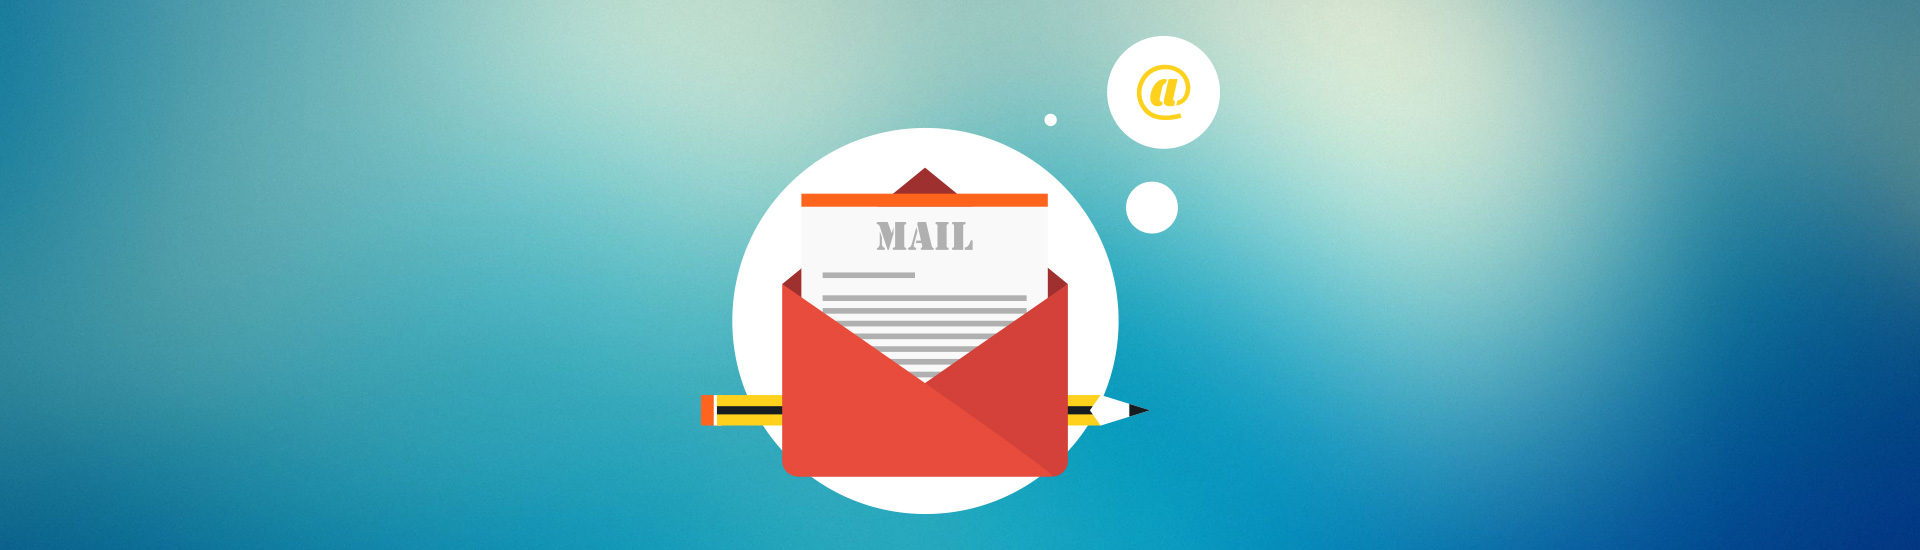 email-marketing blog image